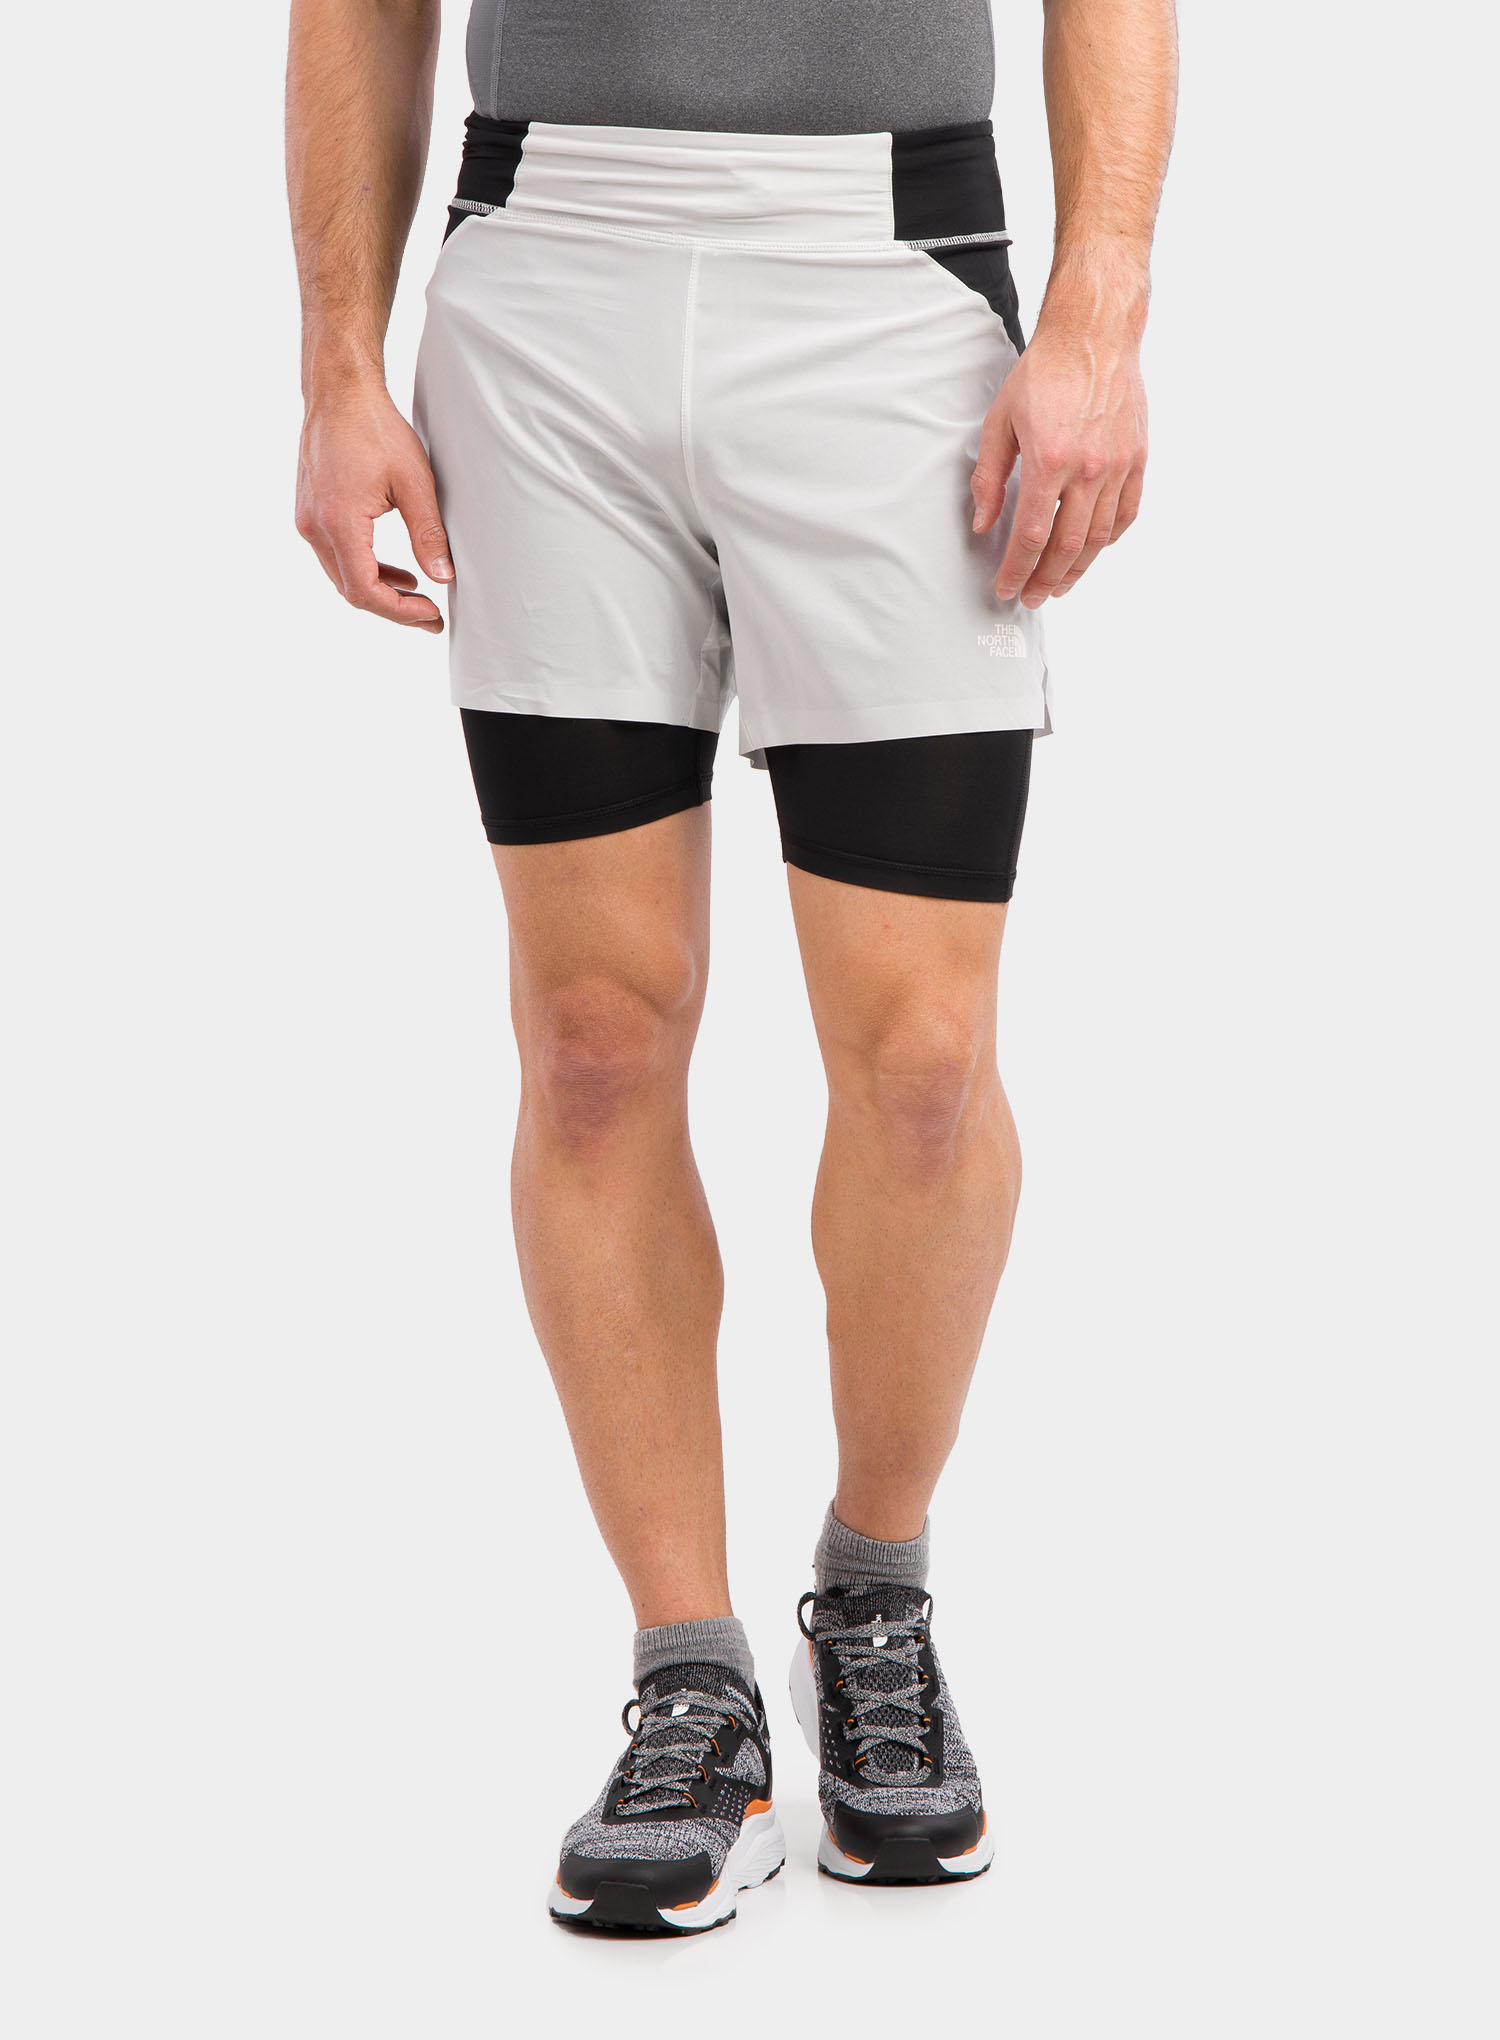 Spodenki The North Face Circadian Comp Lined Short - grey/blk - zdjęcie nr. 1